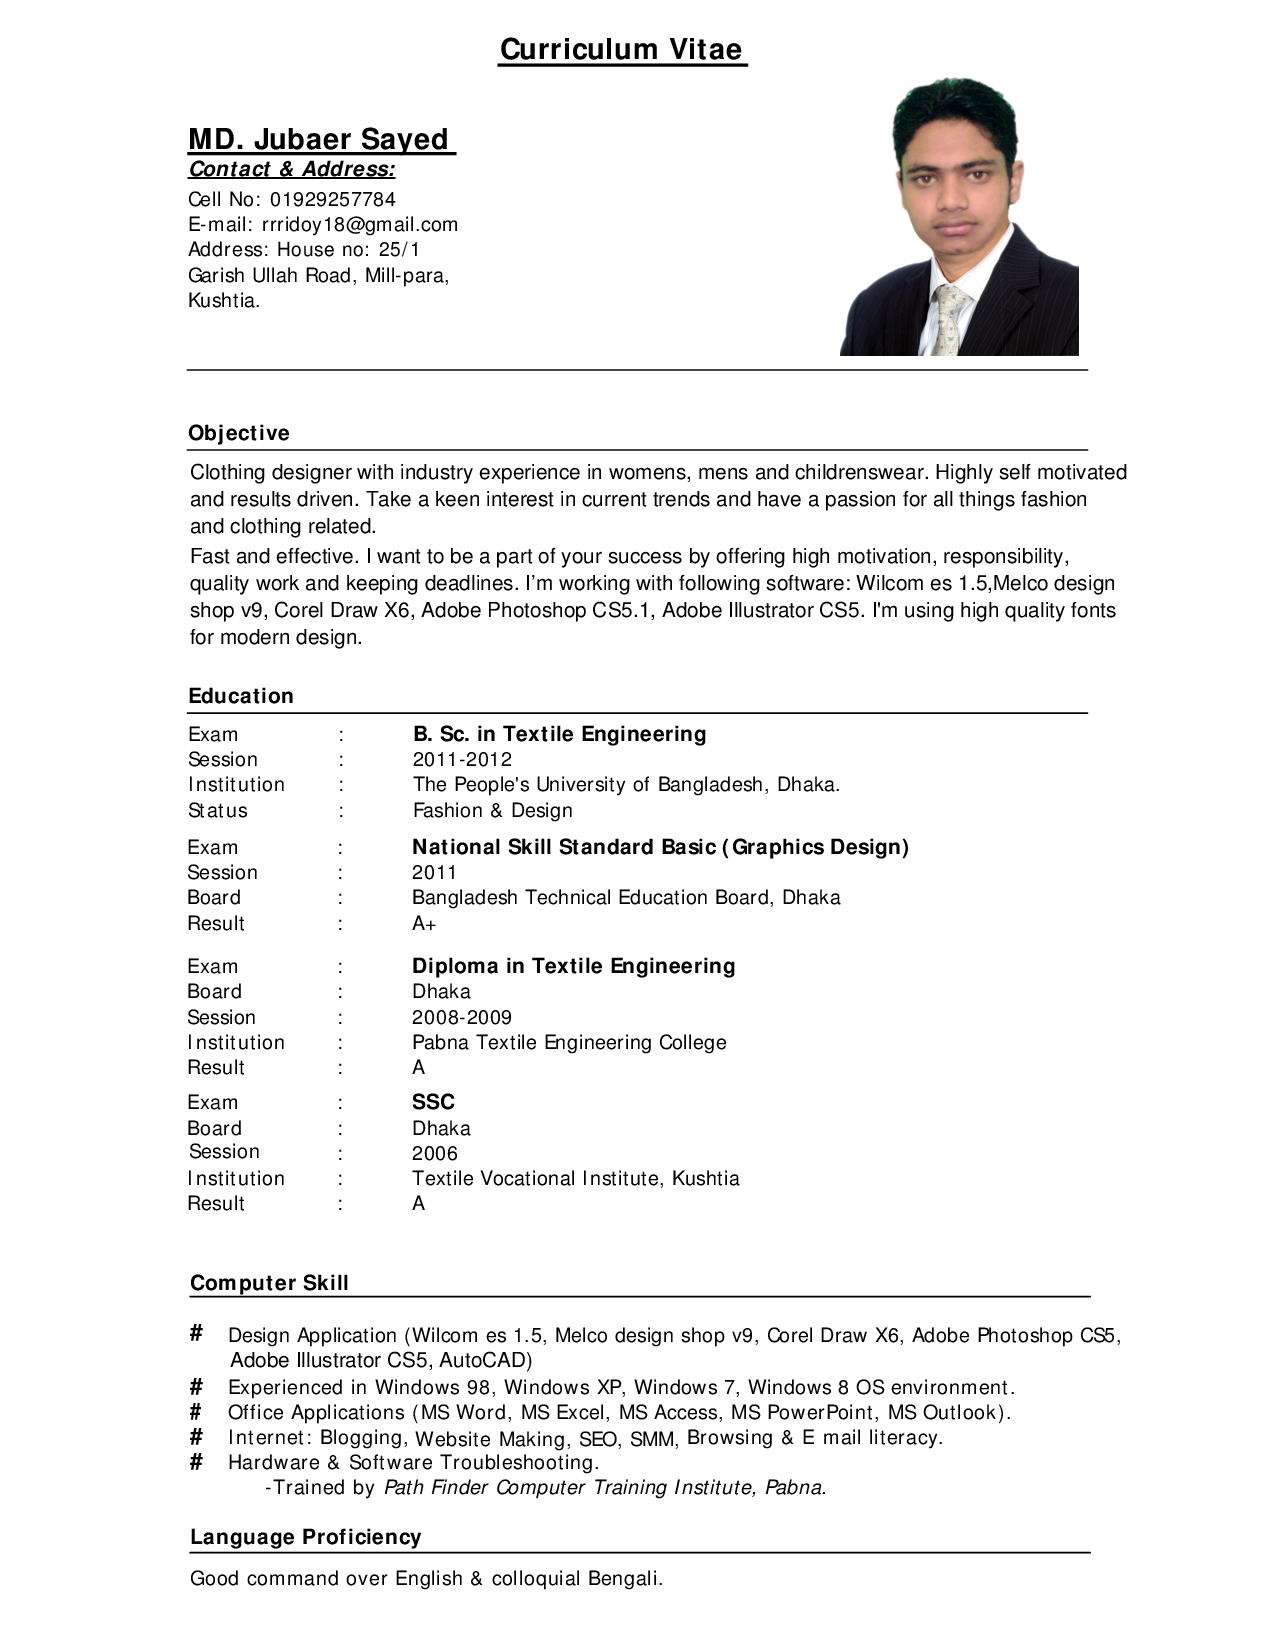 Example resume computer skills and education for curriculum vitae example resume computer skills and education for curriculum vitae resume samples pdf curriculum vitae resume samples pdf thecheapjerseys Image collections